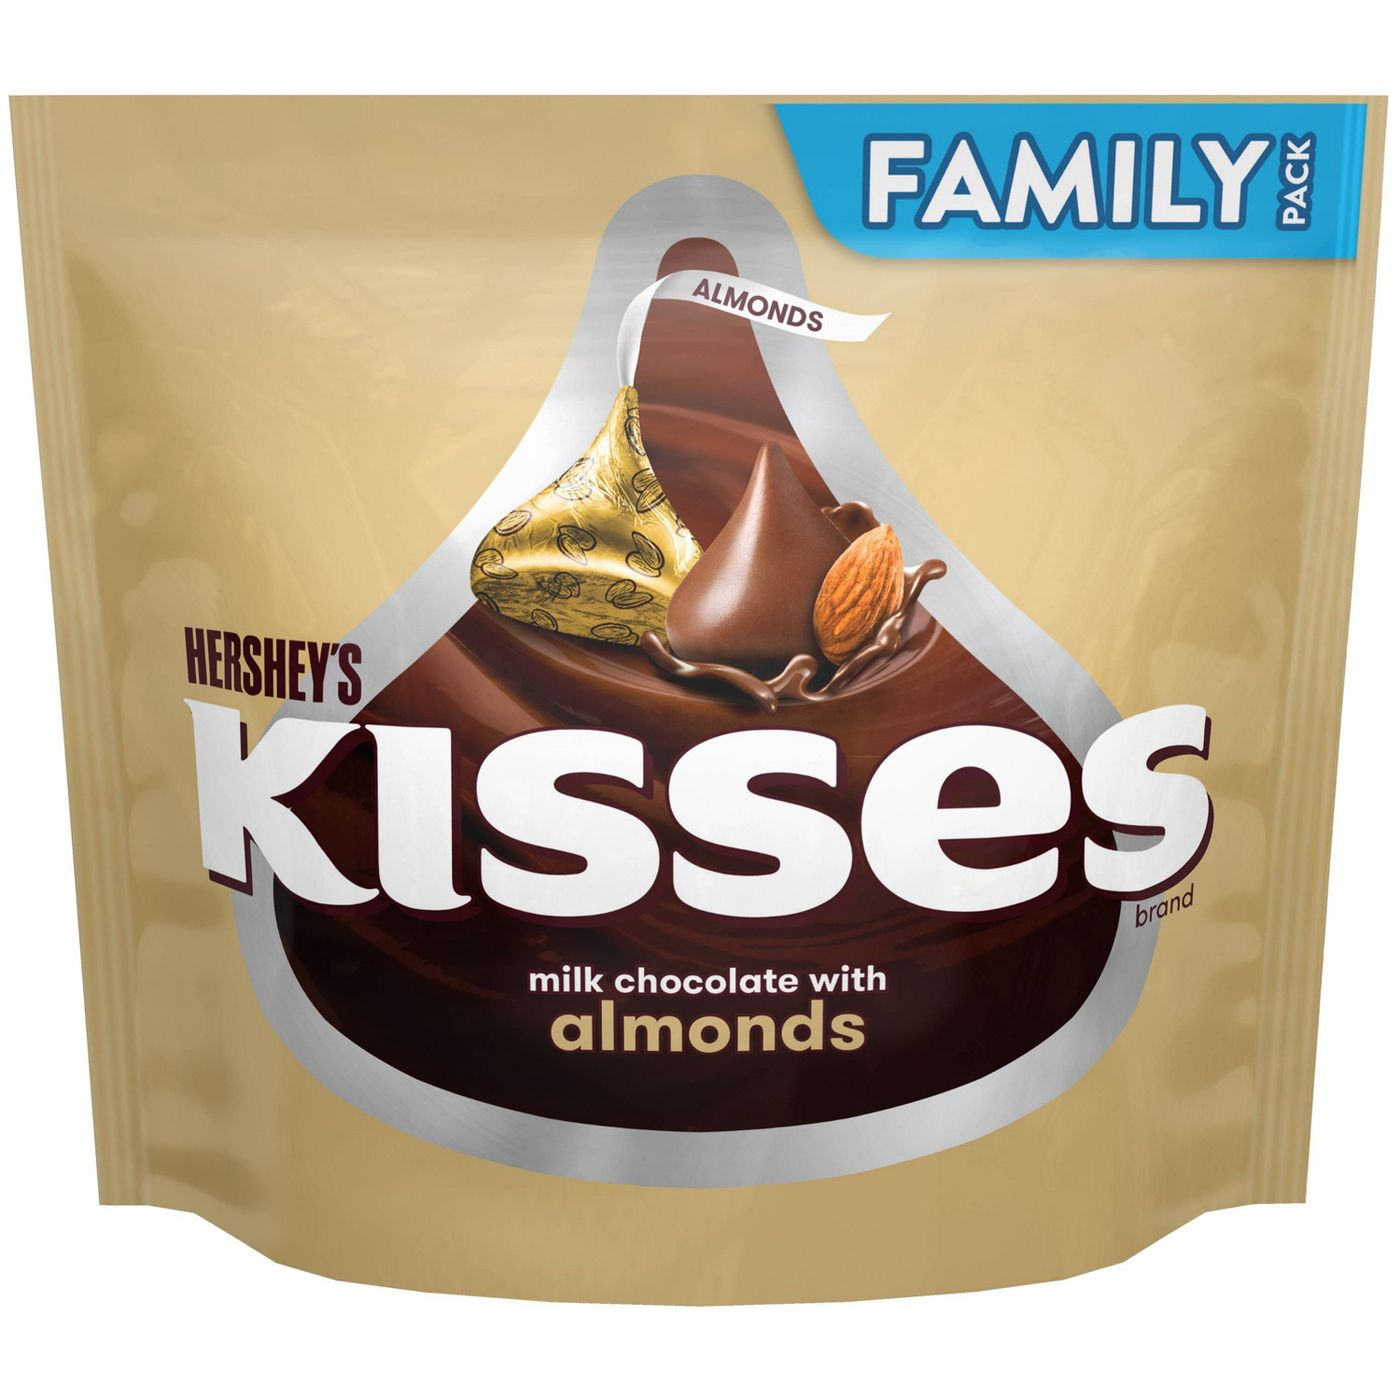 Hershey's, Kisses Family Pack, Milk Chocolate with Almonds, 16oz